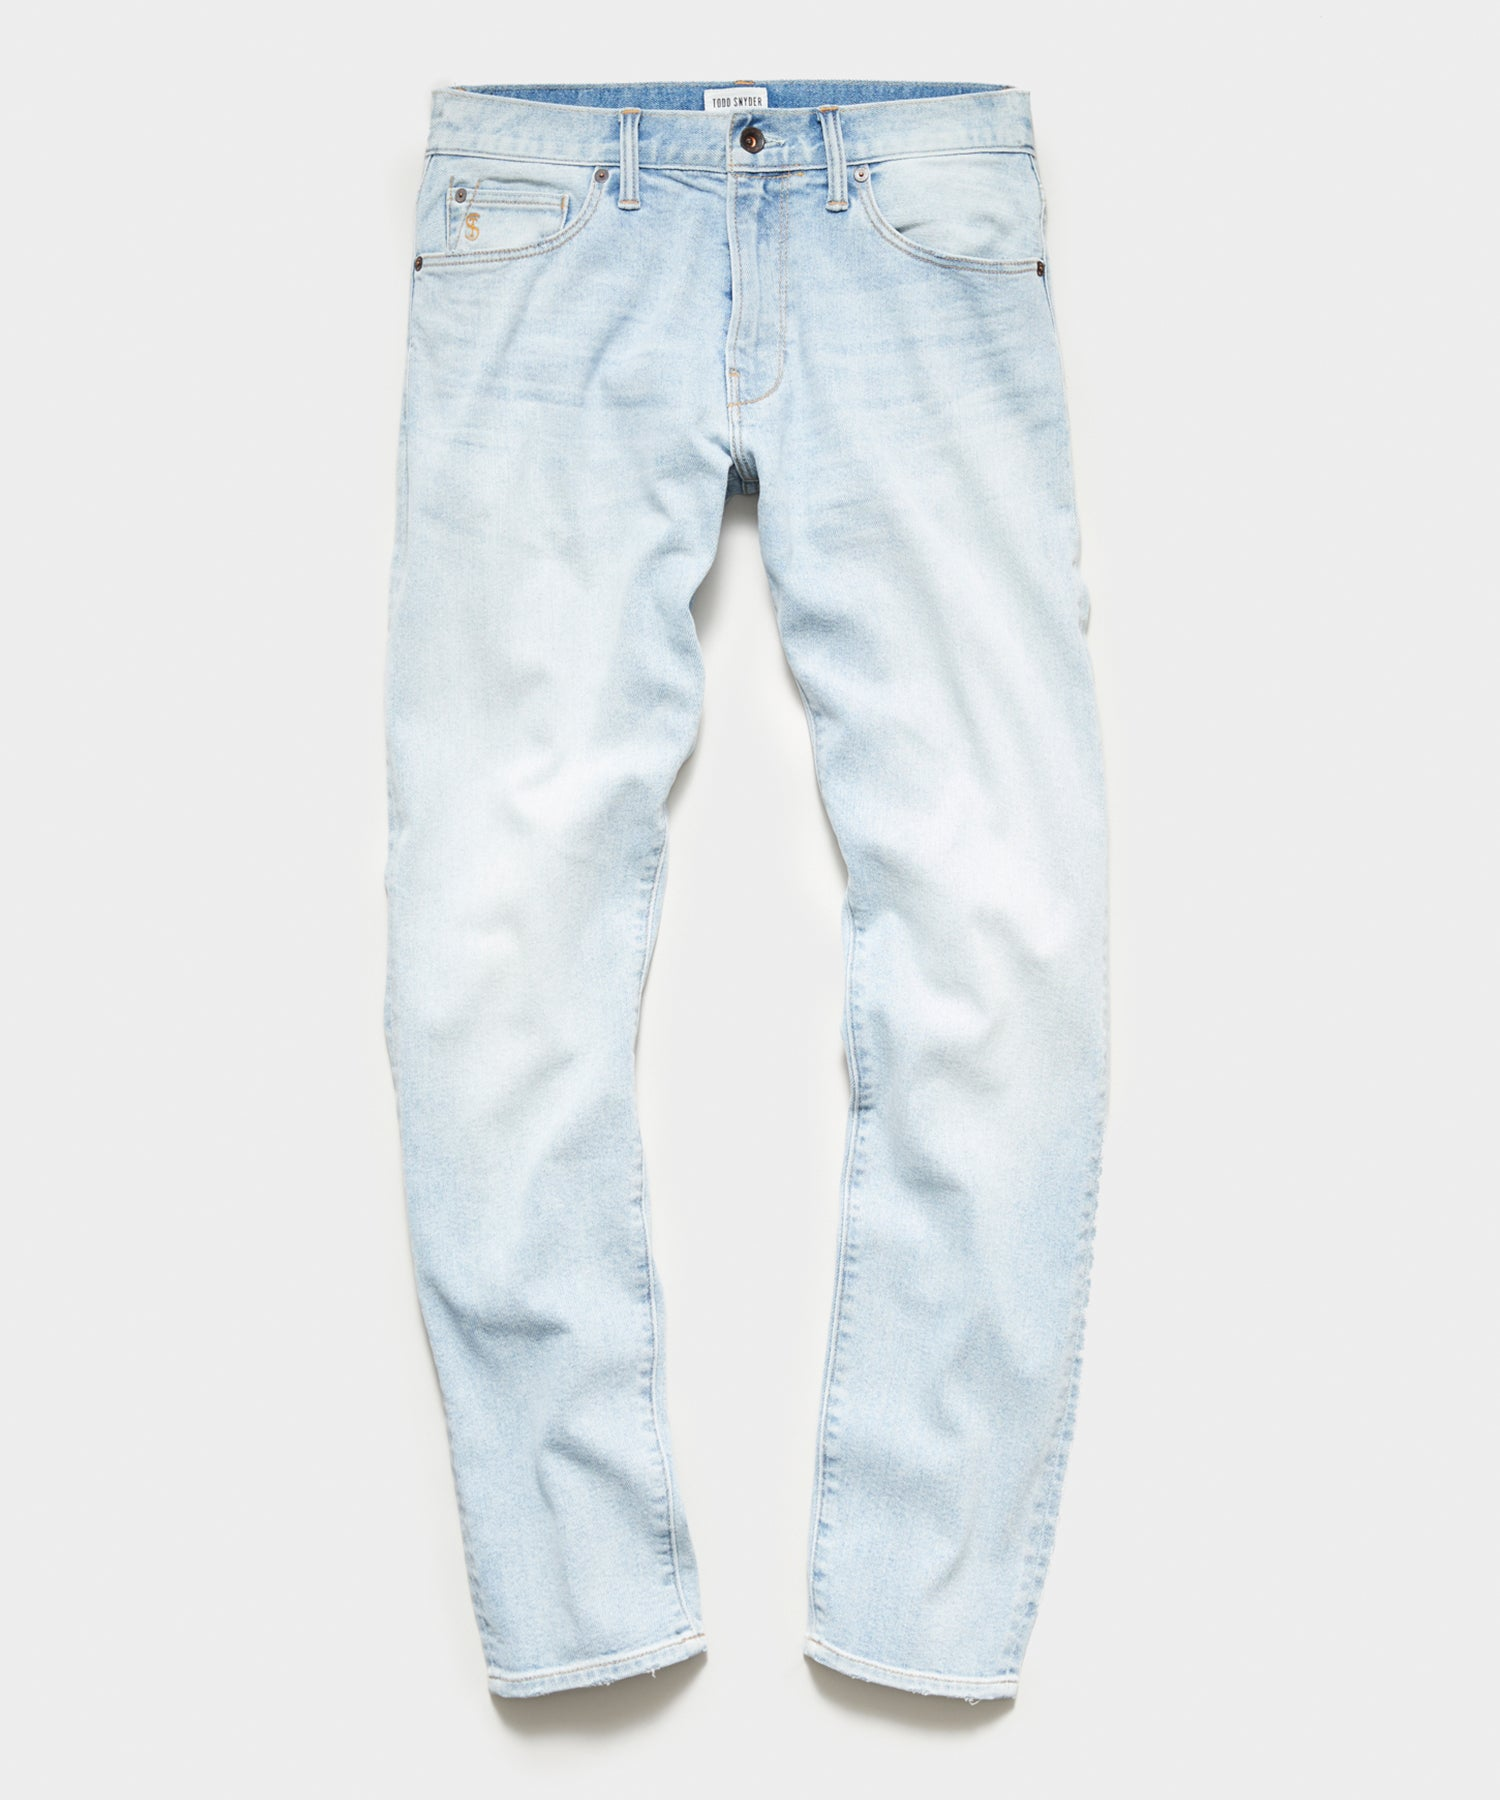 Slim Fit Stretch Jean in Bleachout Wash